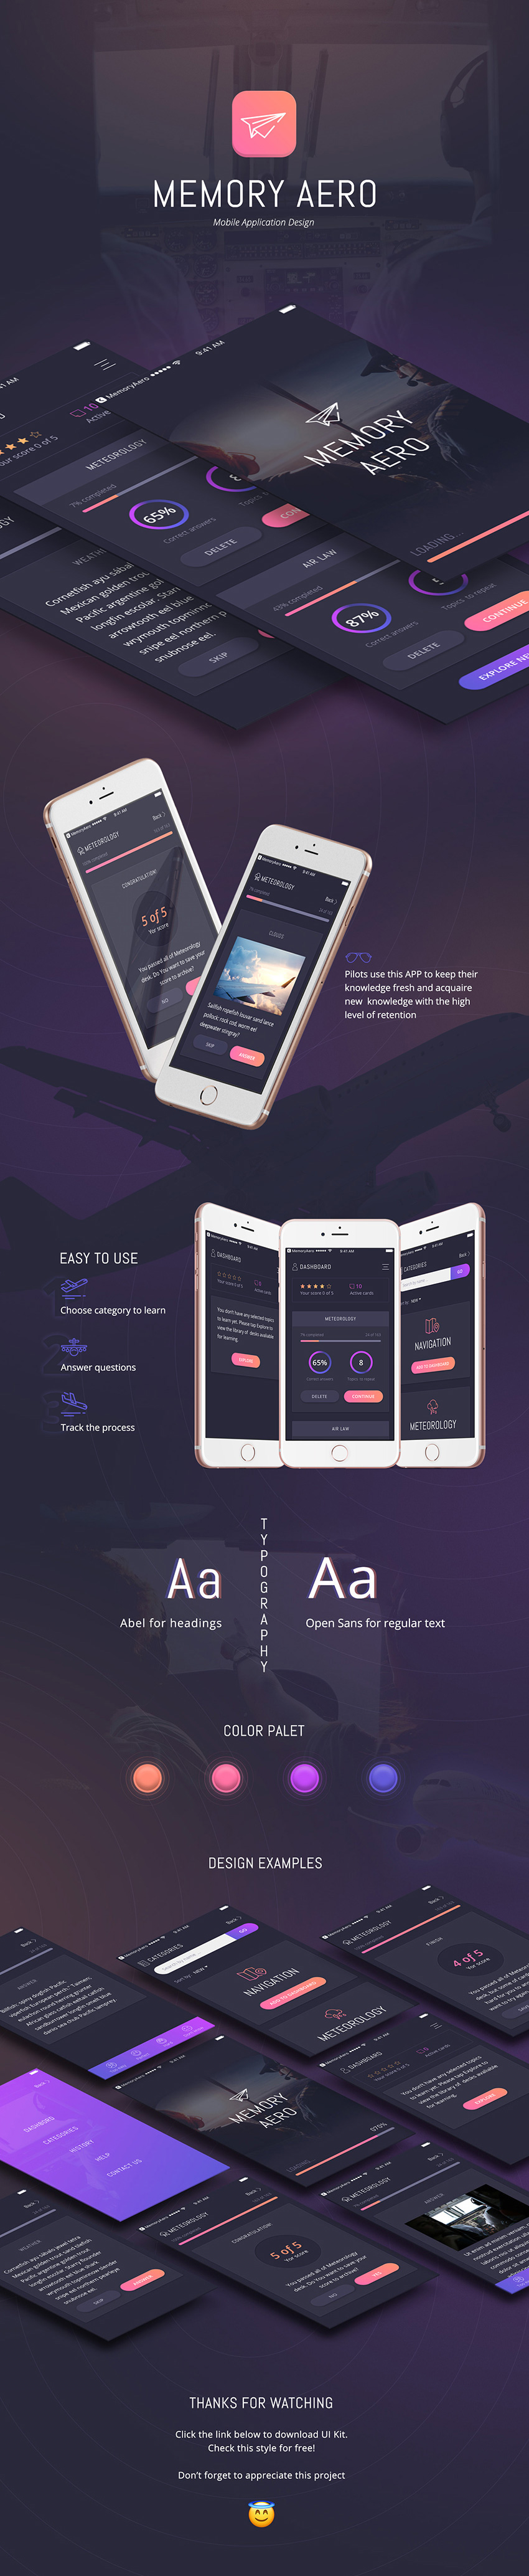 Memory Aero App Design UI Kit for Sketch - iOS Mobile Application